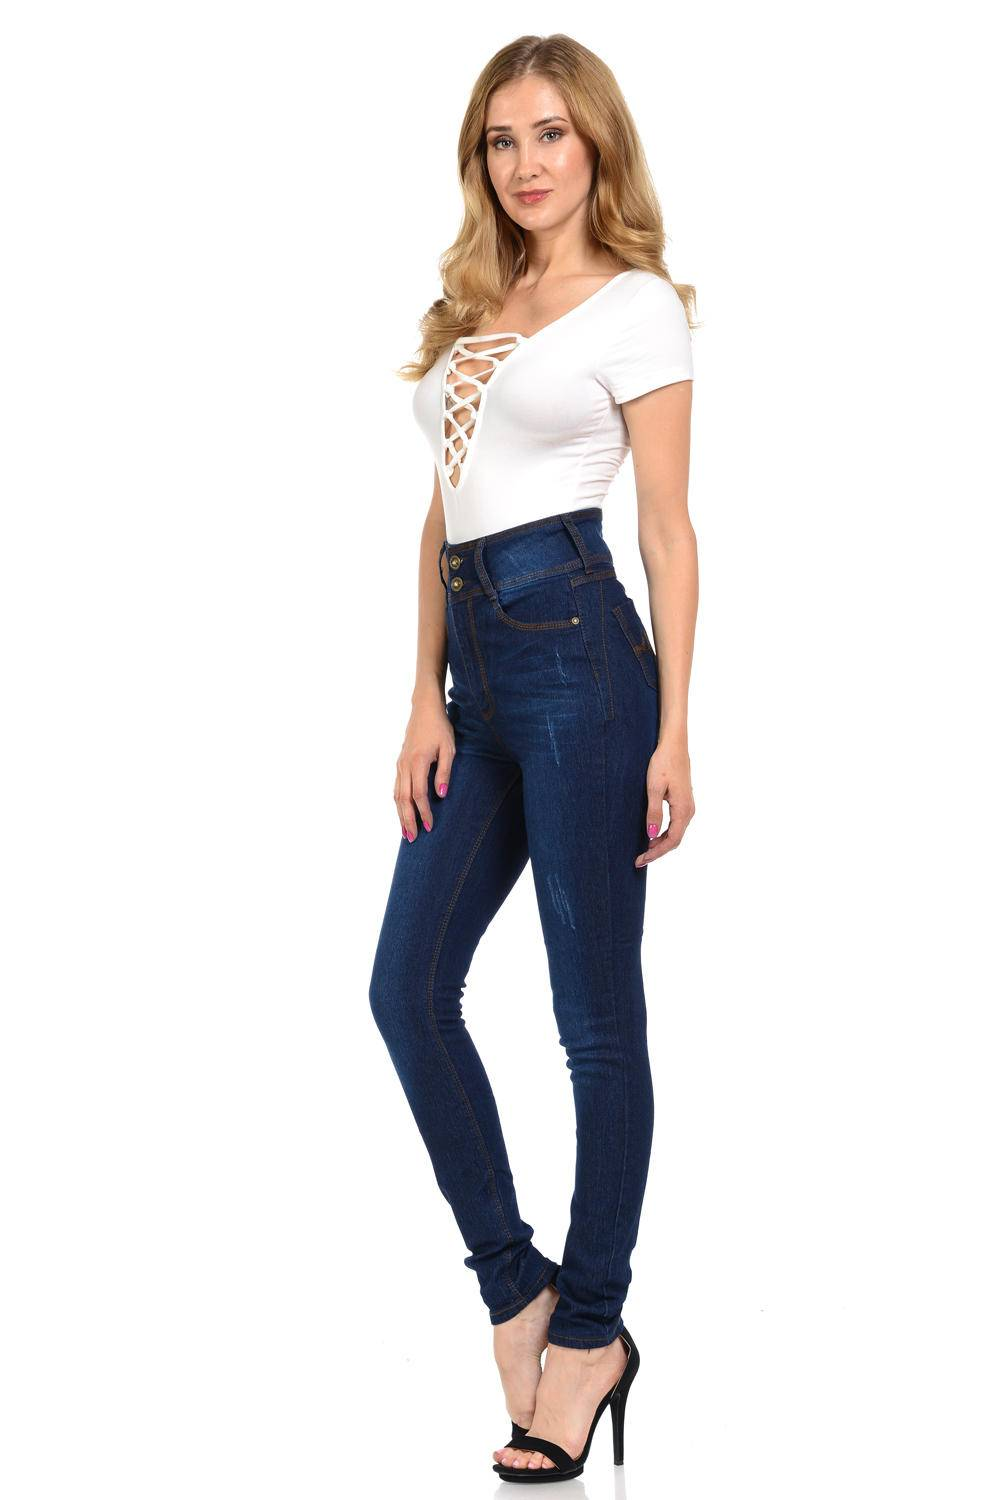 Sweet Look Premium Edition Womens Jeans (Sizing: 0-15